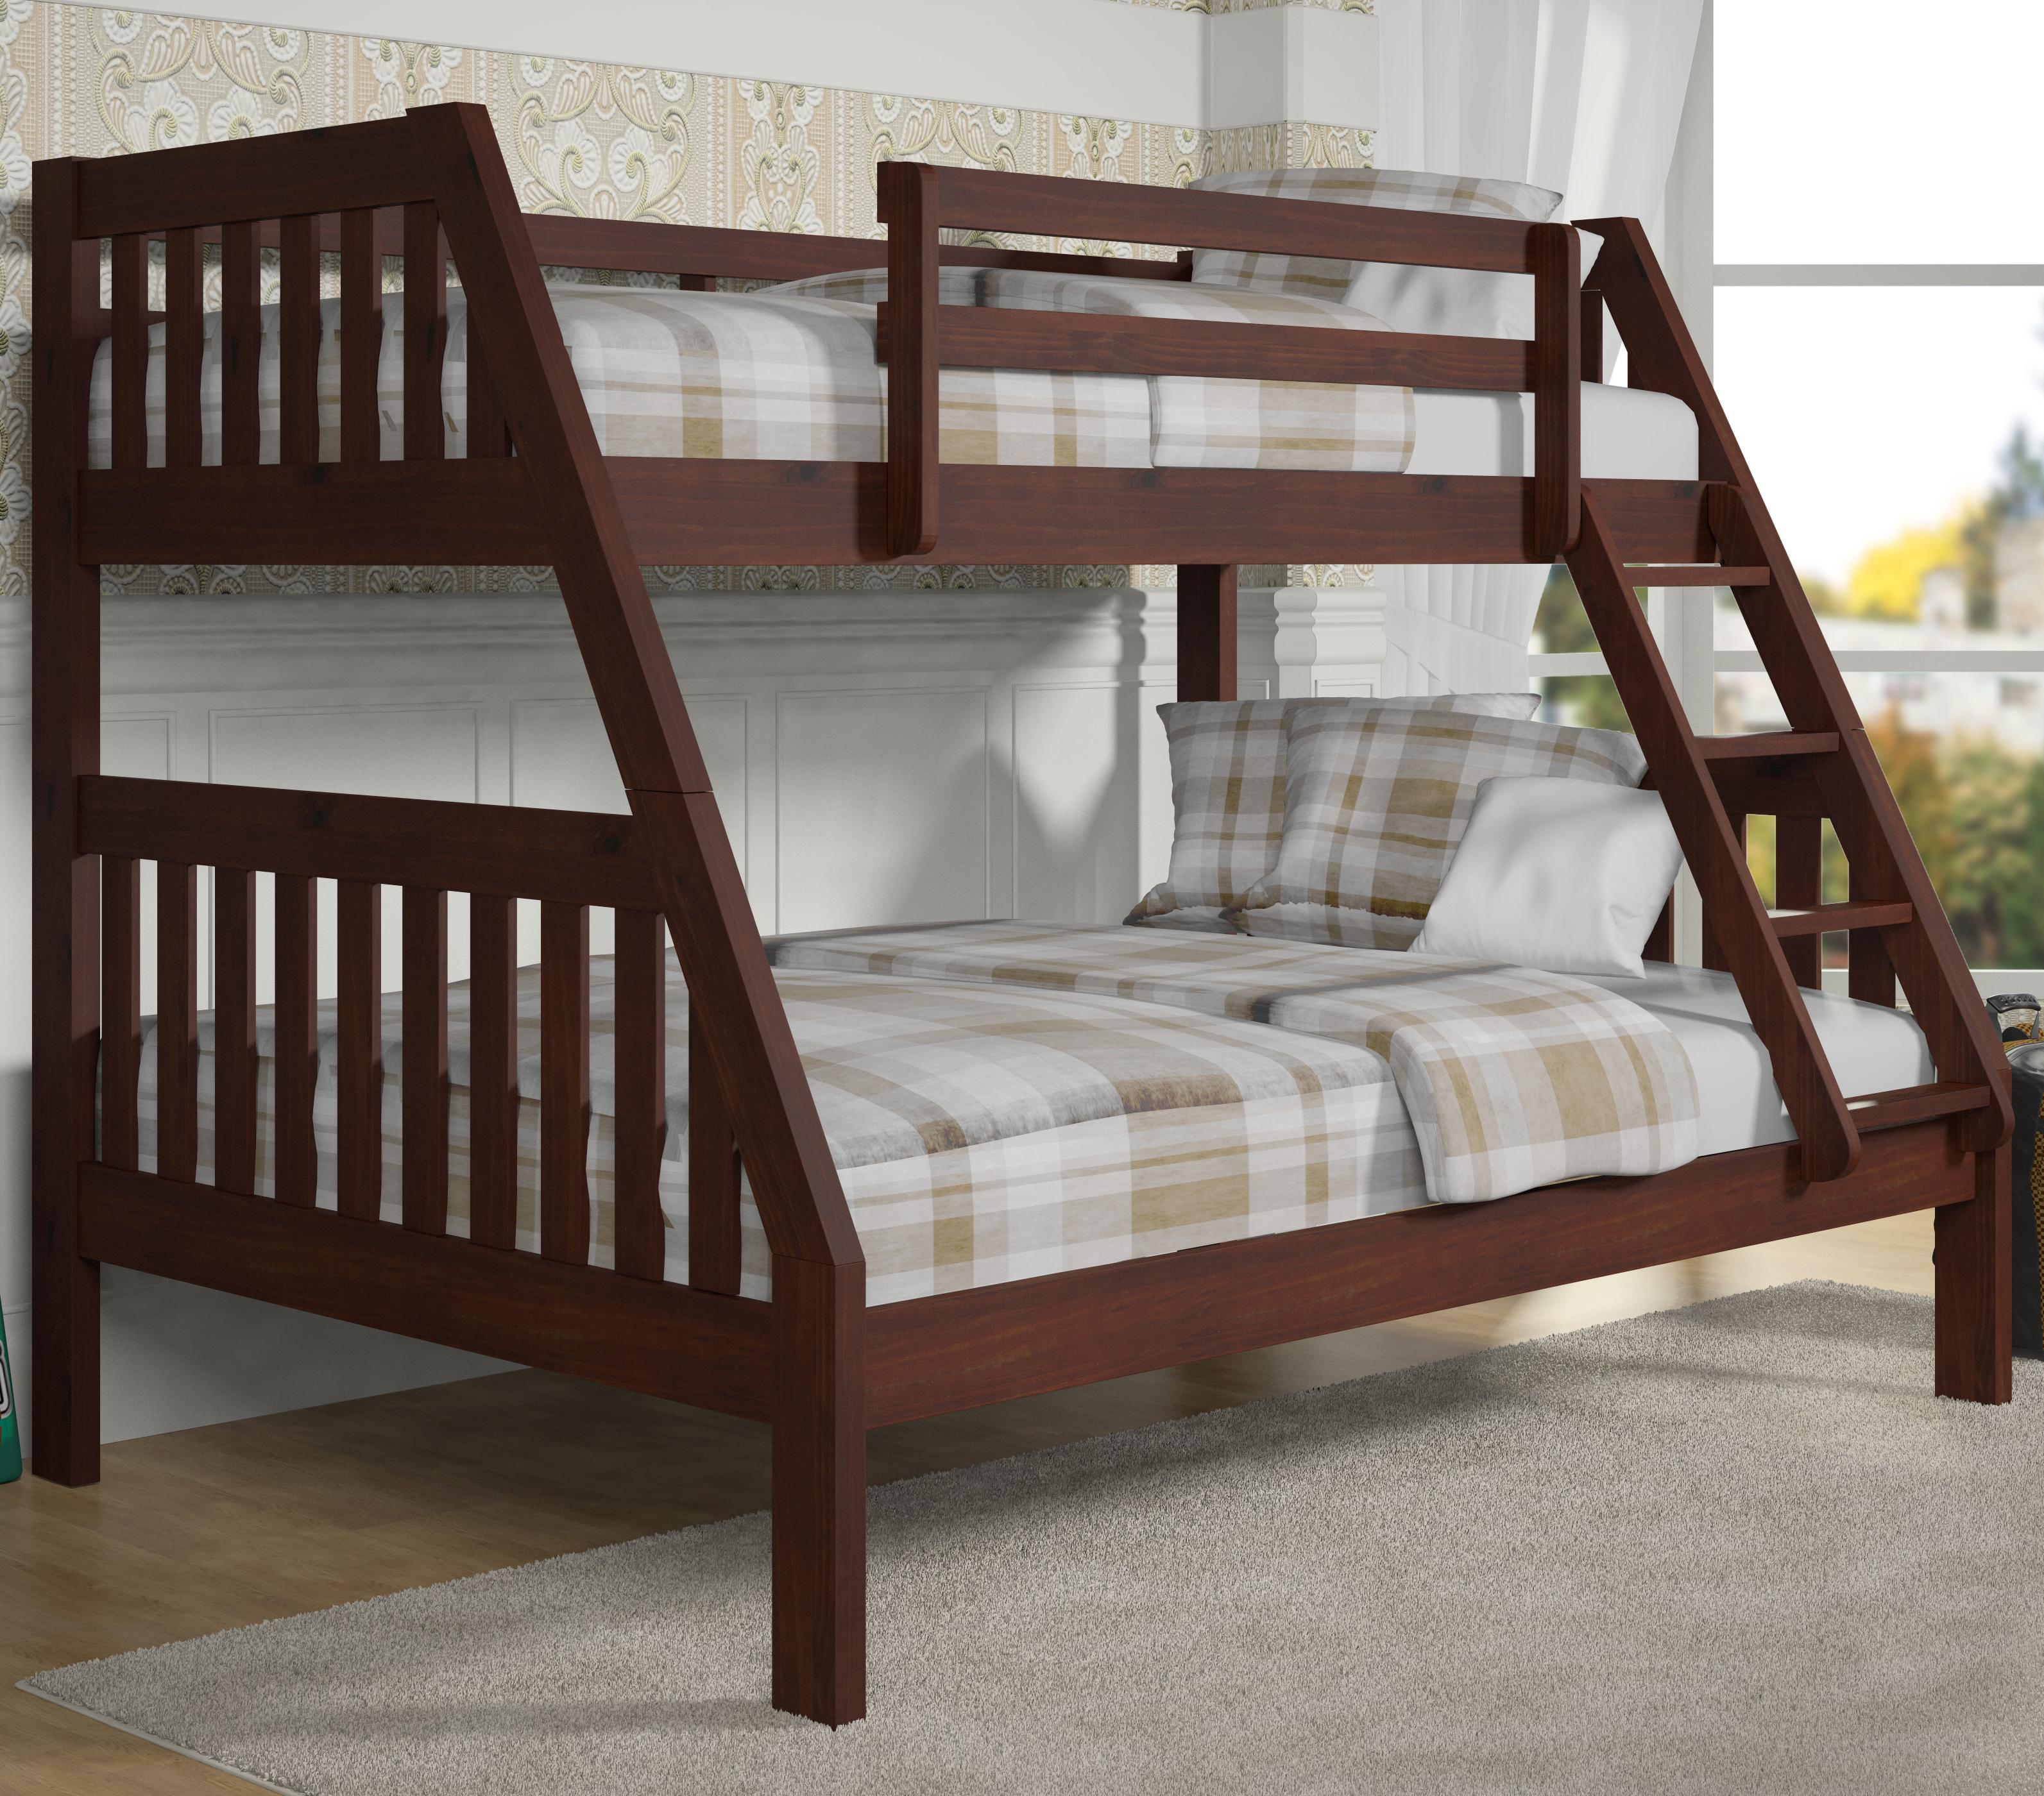 Donco Trading Co 1018 Twin over Full Bunk Bed - Item Number: 1018-3CP